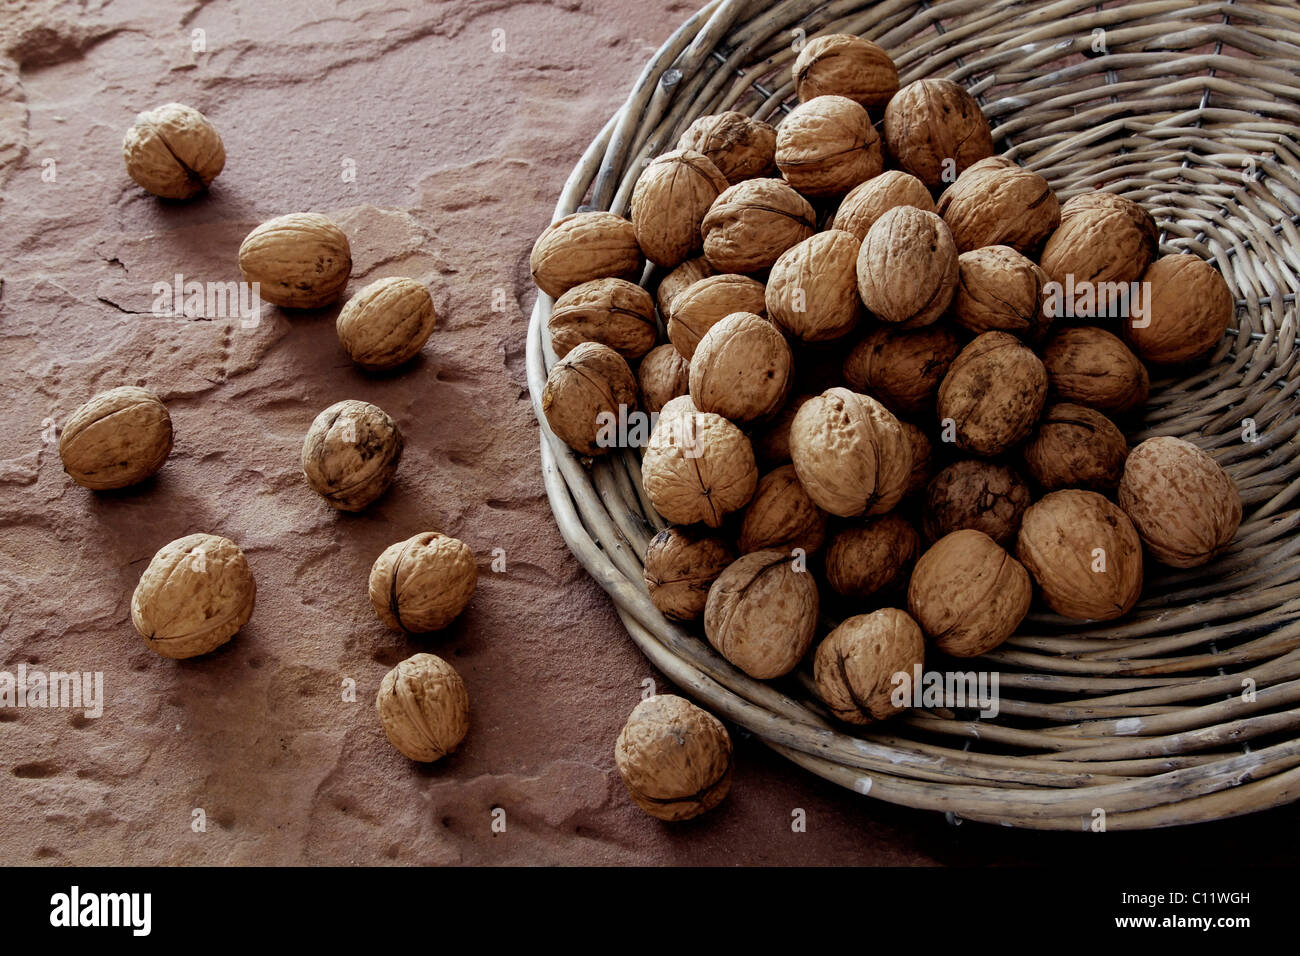 Walnuts (Juglans) tipped from a wicker plate on sandstone - Stock Image